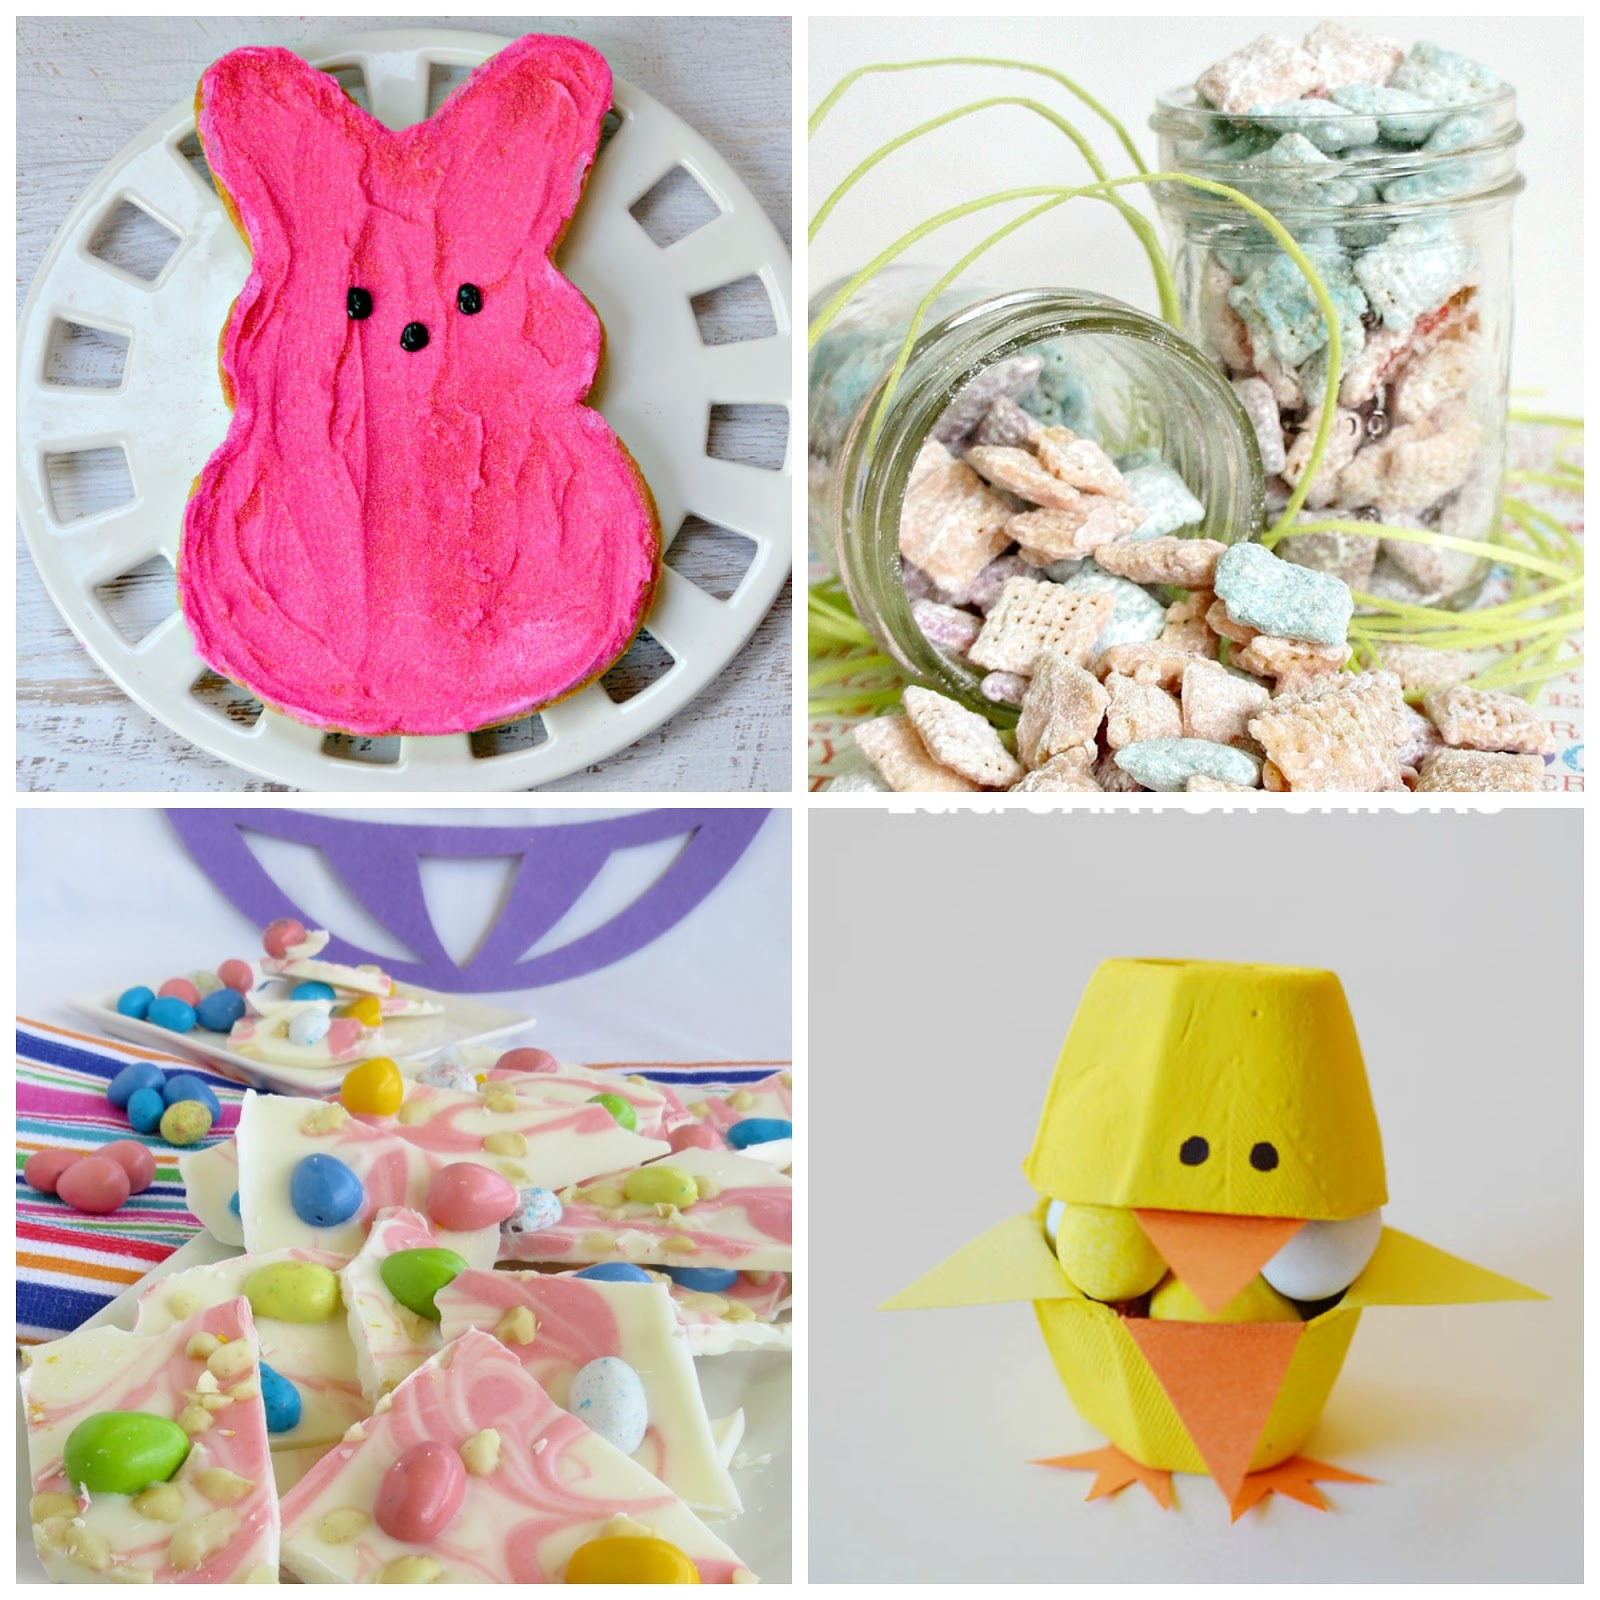 Peeps Cake, Muddy buddies, Macadamia Bark, Egg Carton Chicks